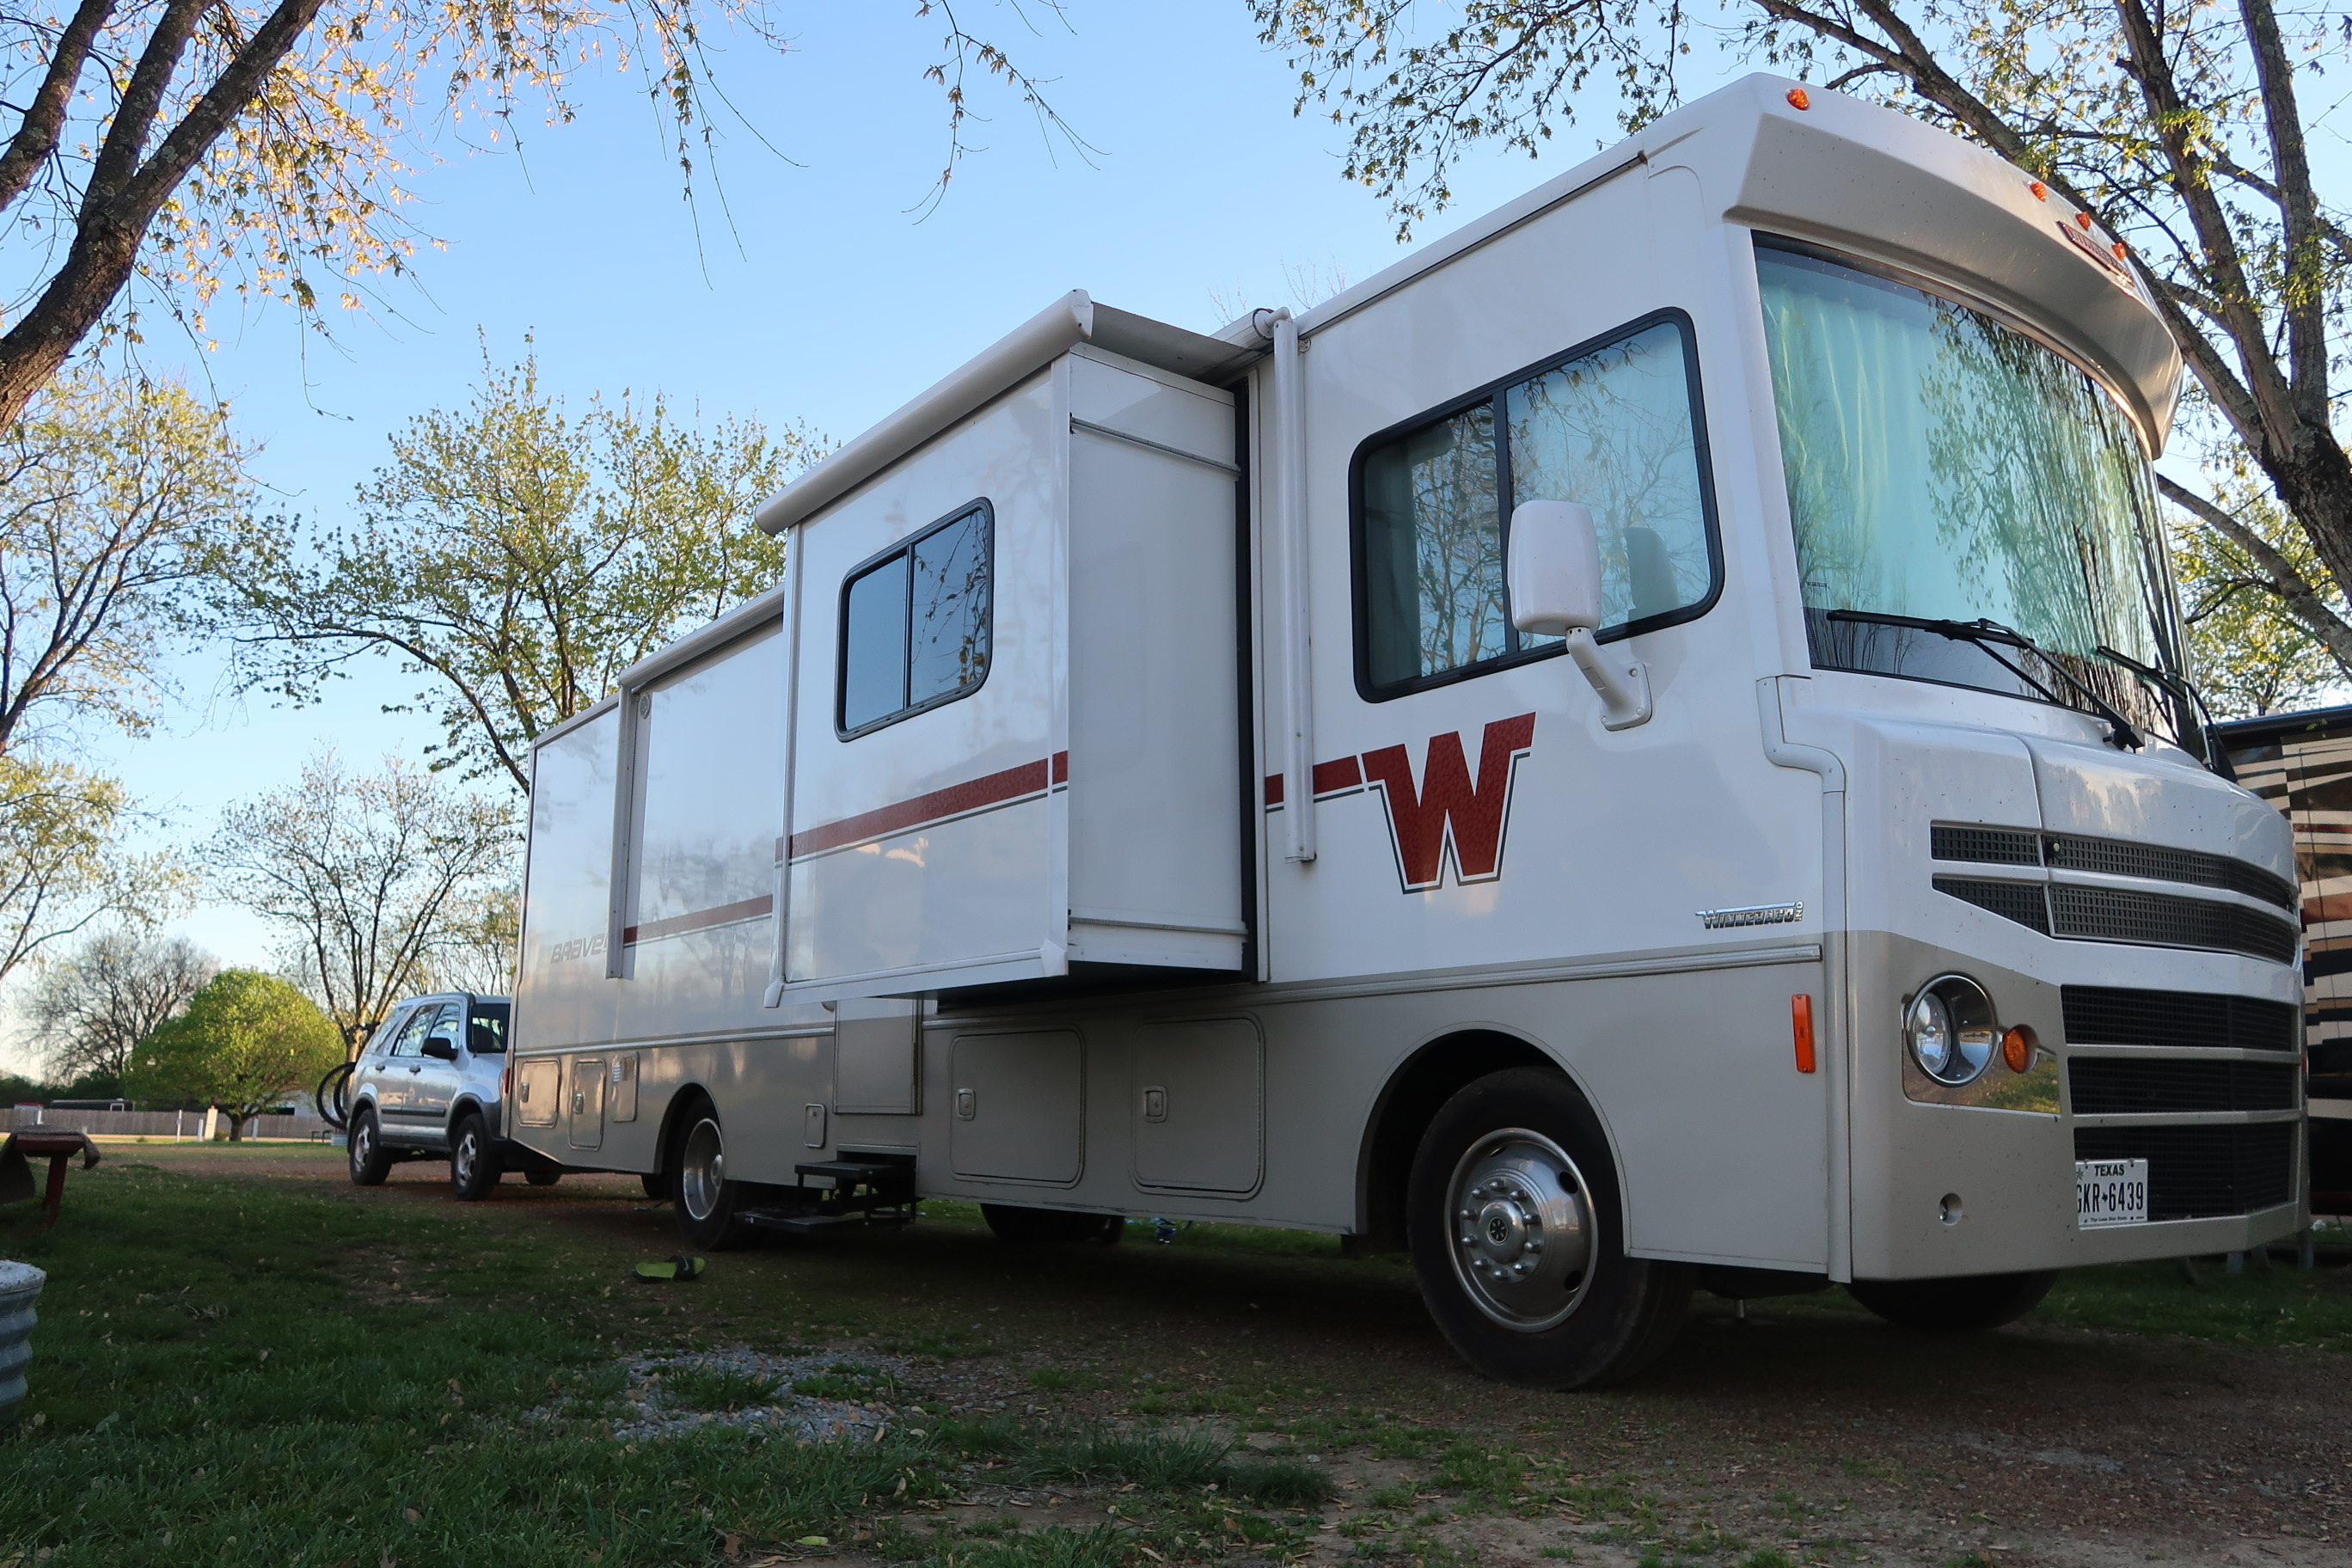 RVE 63: 21 Questions Everyone Asks Us About Living in an RV